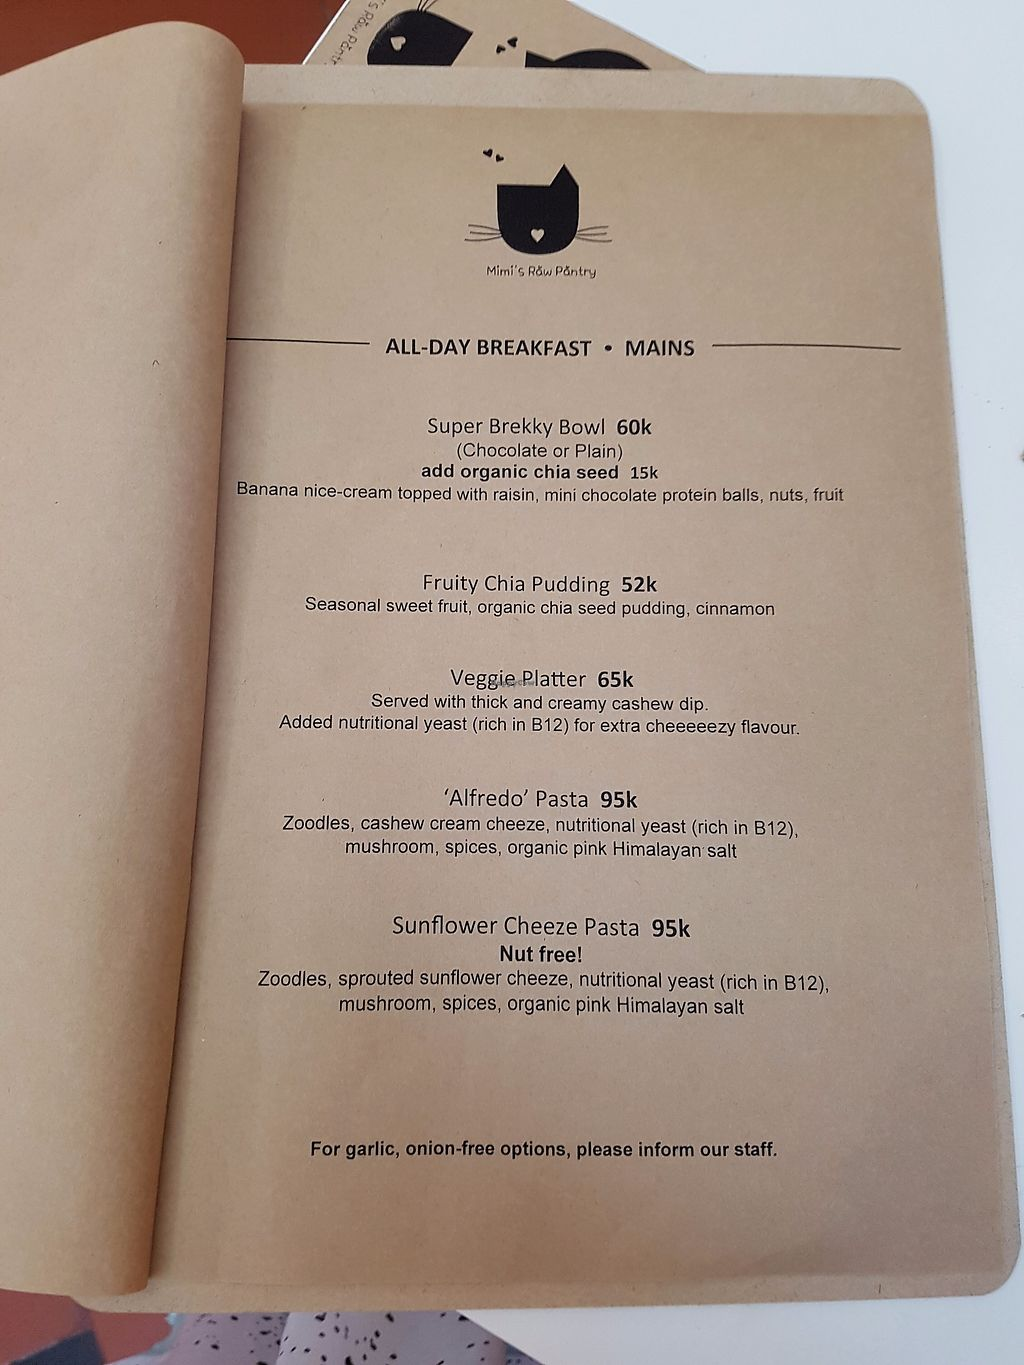 """Photo of Mimi's Raw Pantry  by <a href=""""/members/profile/KyungminYou"""">KyungminYou</a> <br/>menu <br/> September 23, 2017  - <a href='/contact/abuse/image/98727/307366'>Report</a>"""